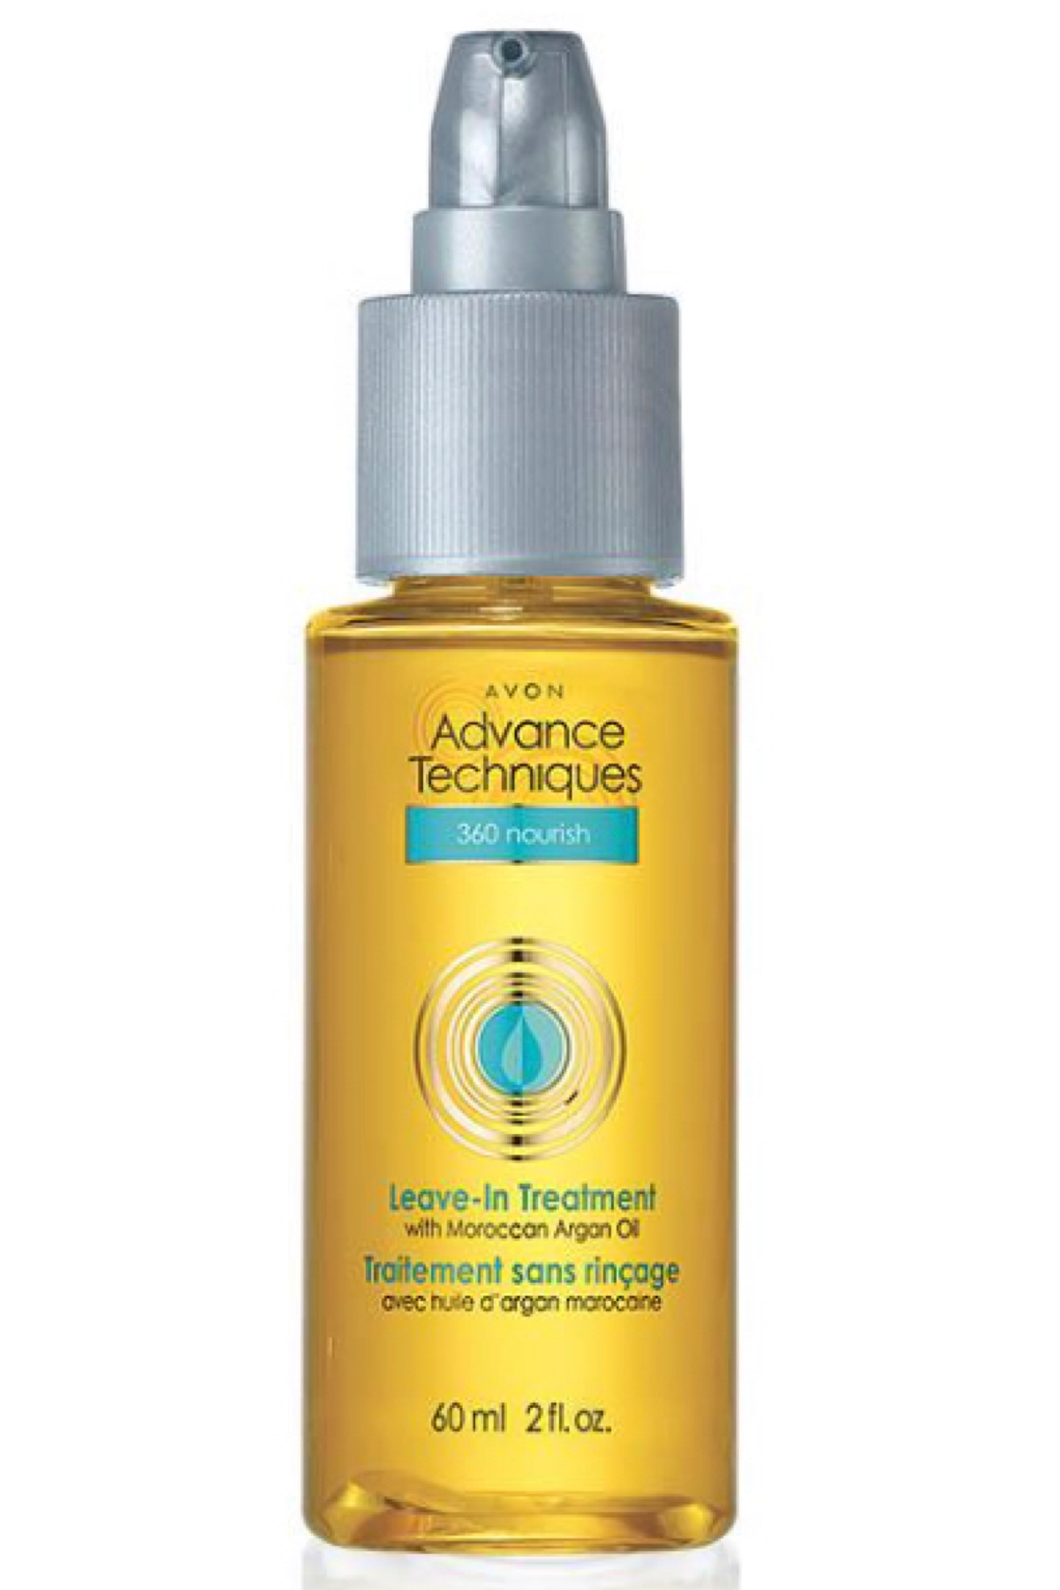 Advance Techniques 360 Nourish With Moroccan Argan Oil Leave-In Treatment 60ml